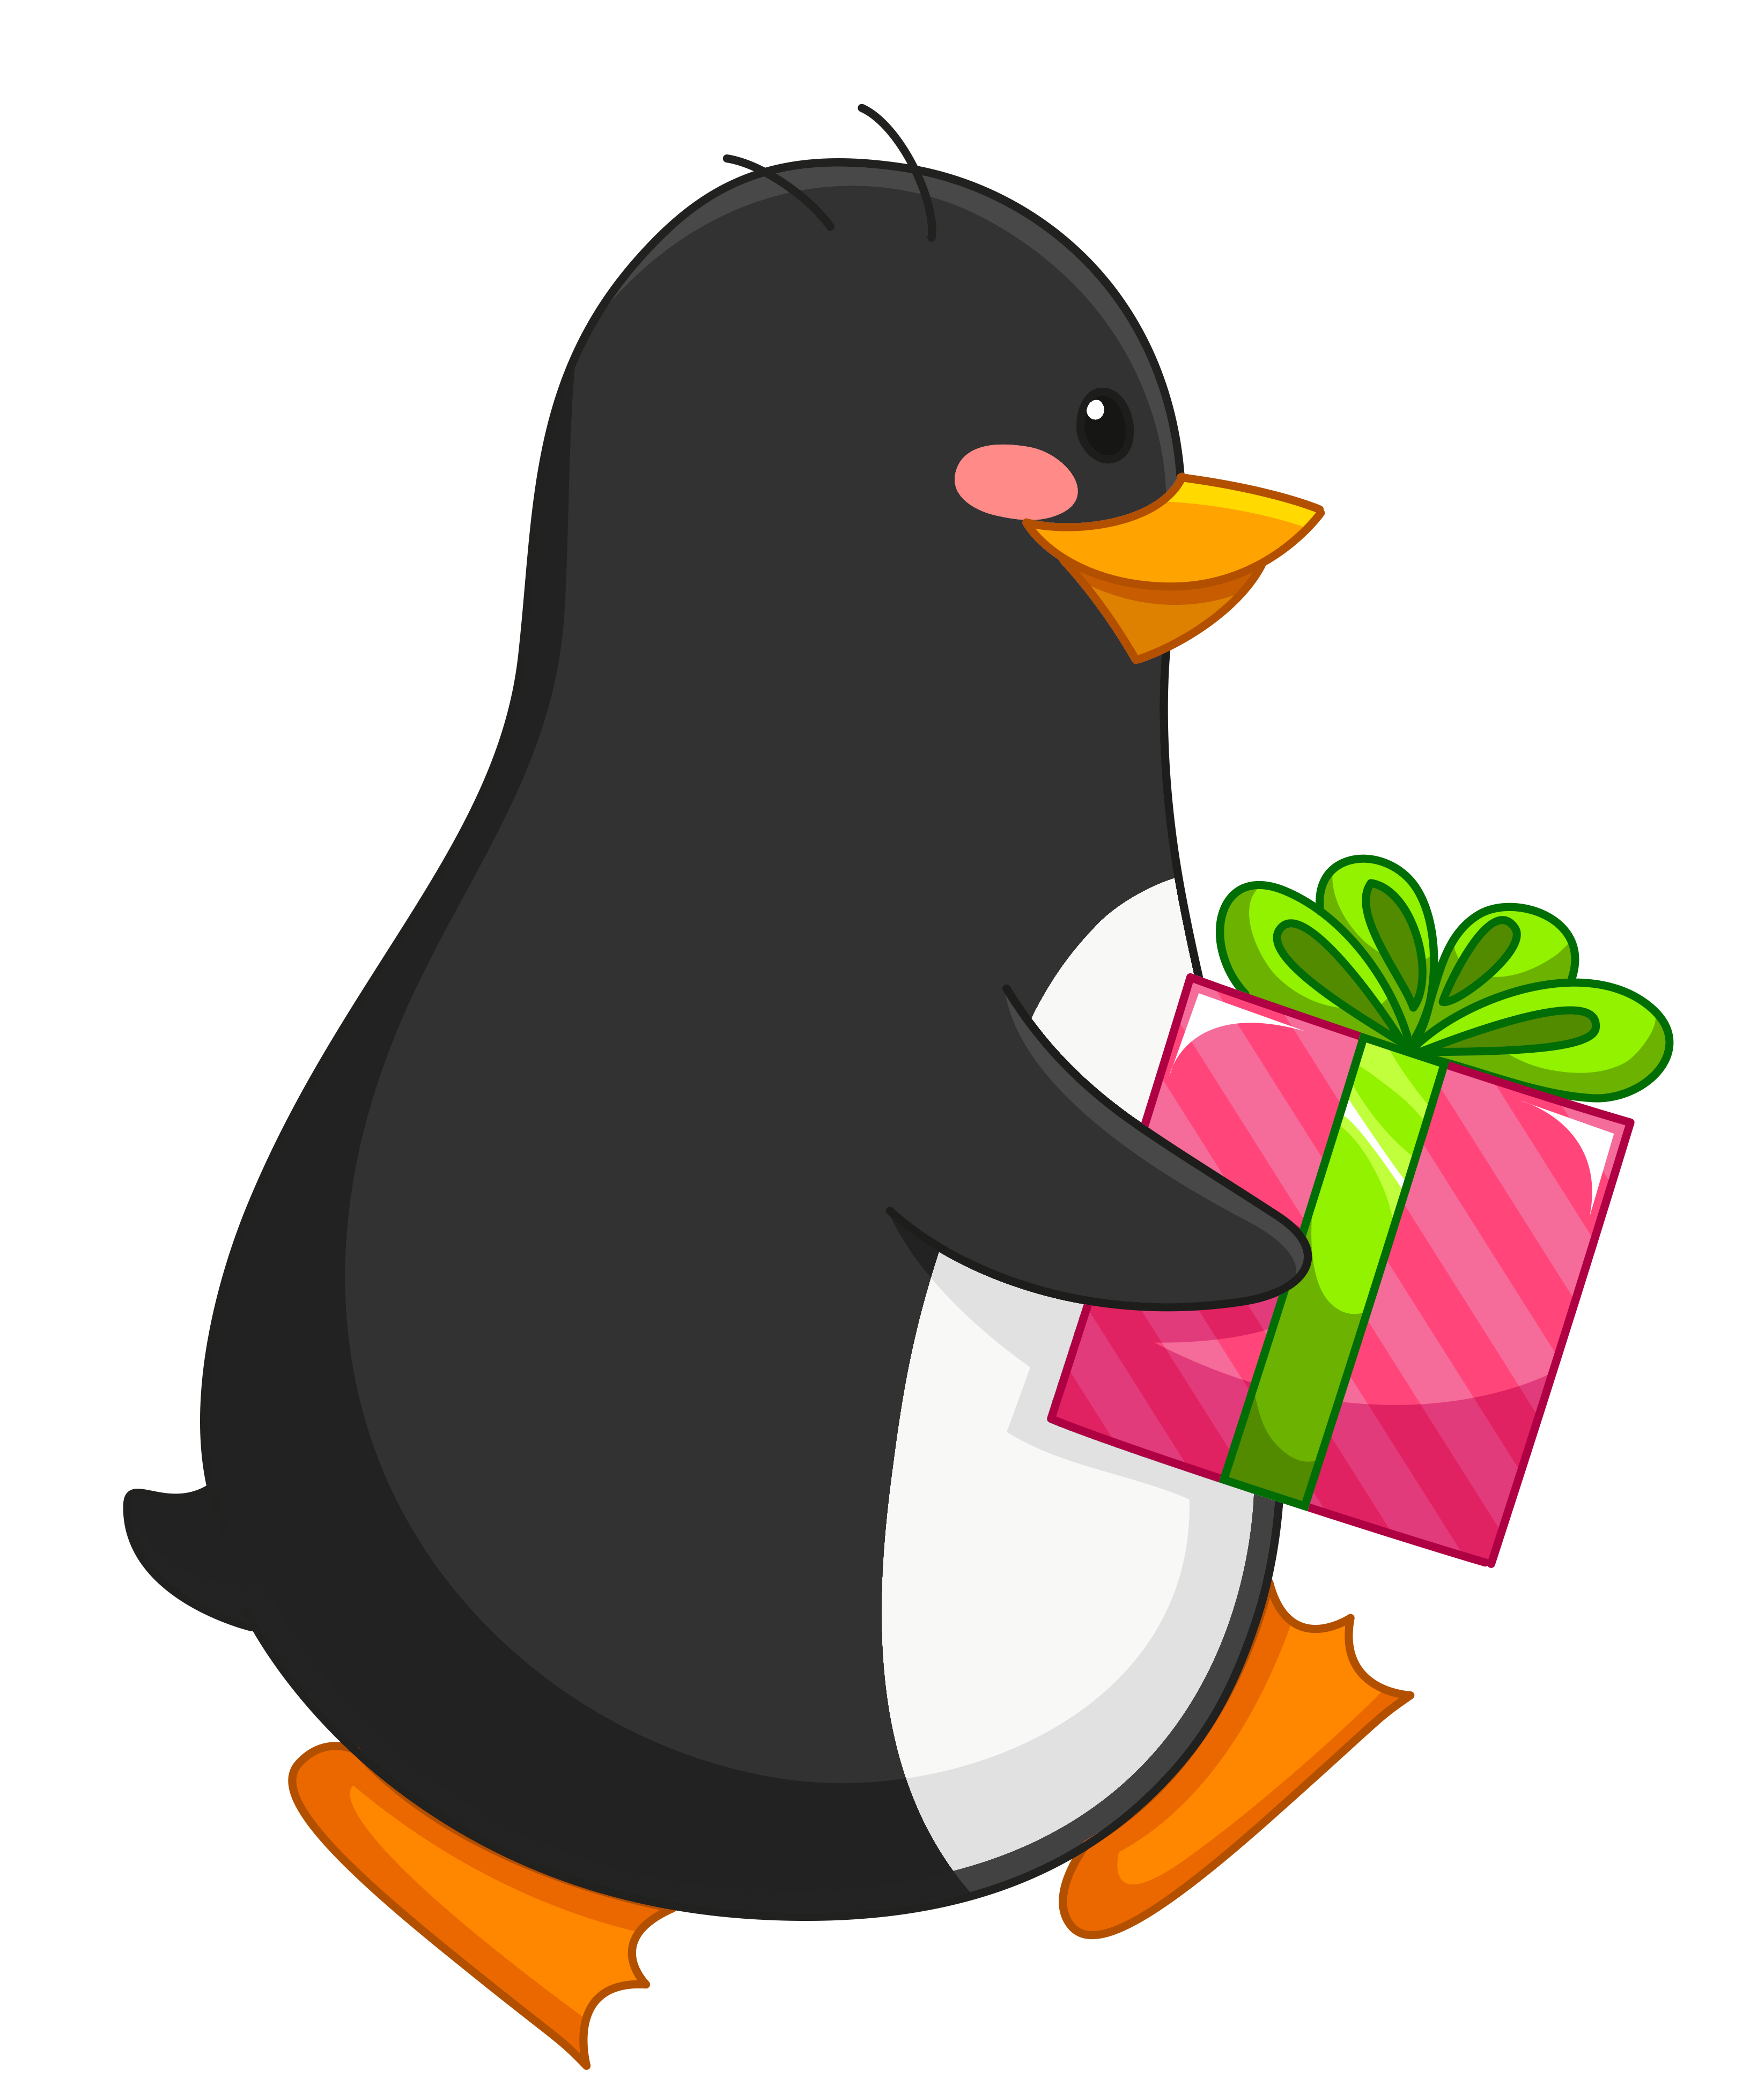 Transparent penguin with gift. Clipart penquin merry christmas